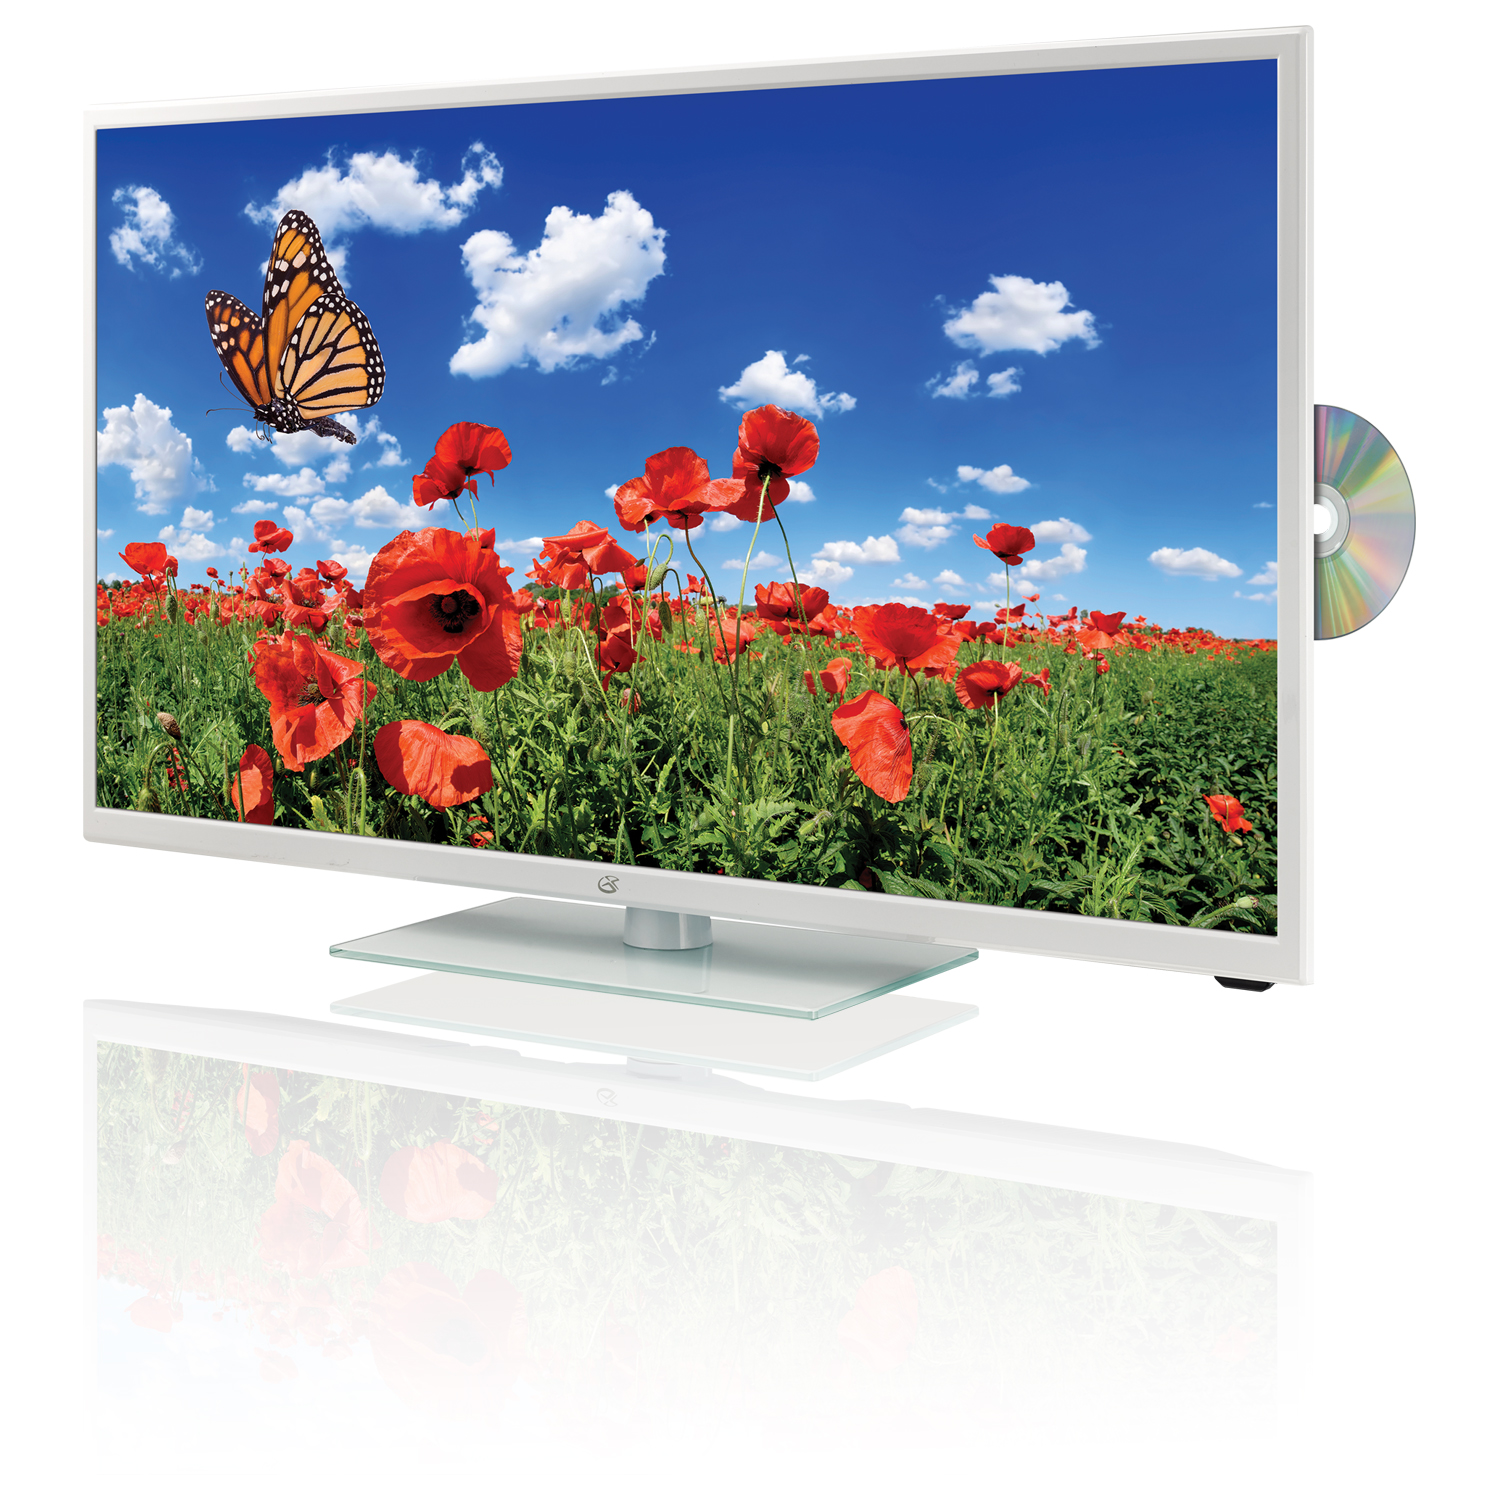 "GPX 32"" Class Full HD, DLED TV with DVD Player 1080p, 60Hz (TDE3274WP) by GPX"